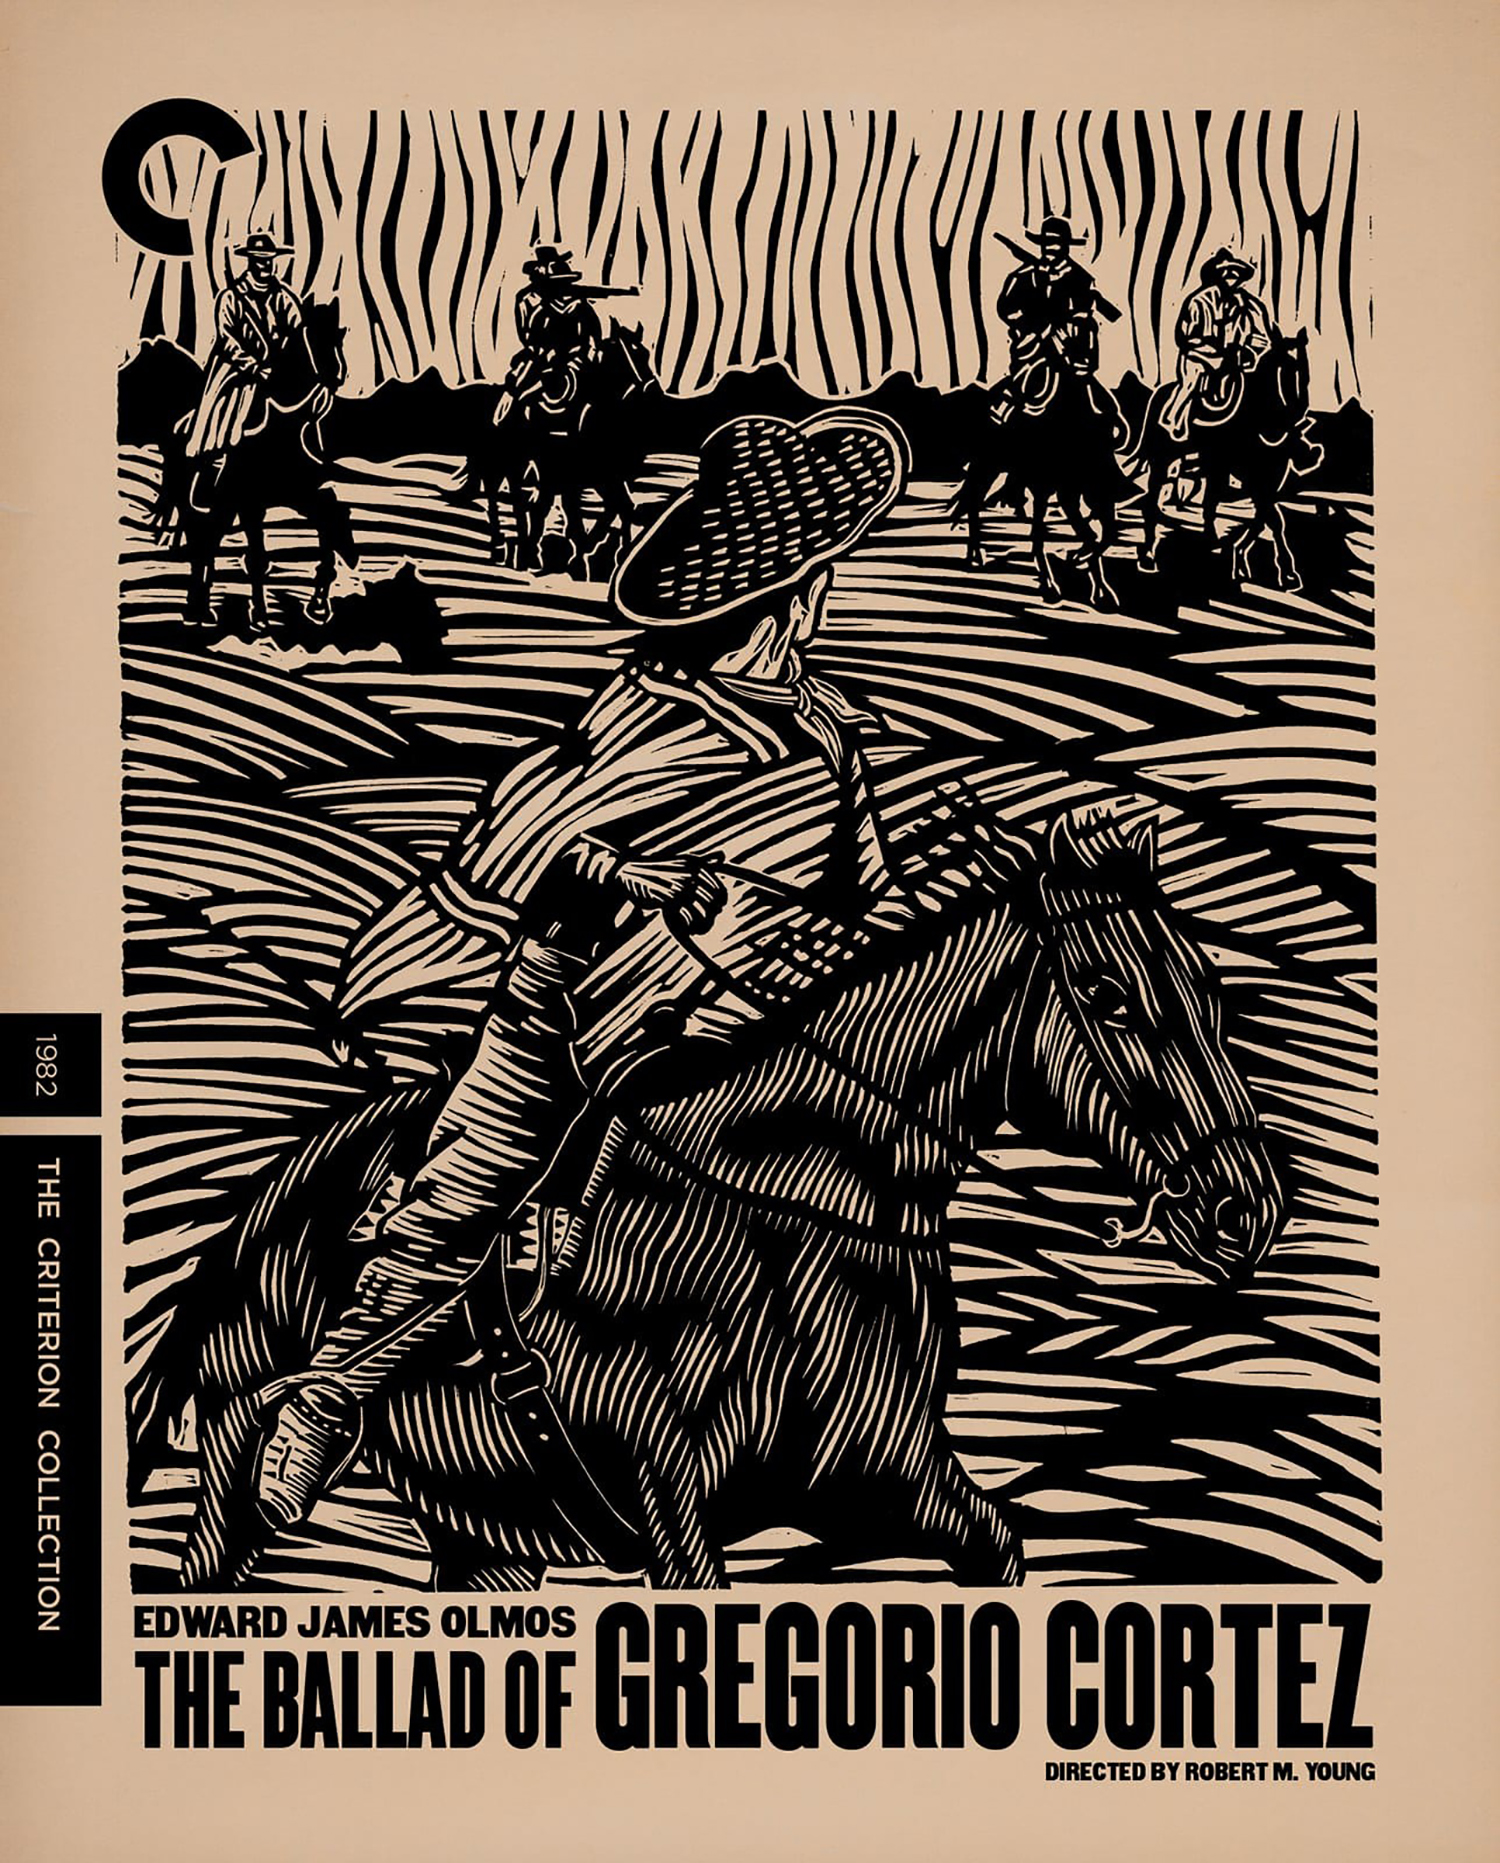 Review: Robert M. Young's The Ballad of Gregorio Cortez on